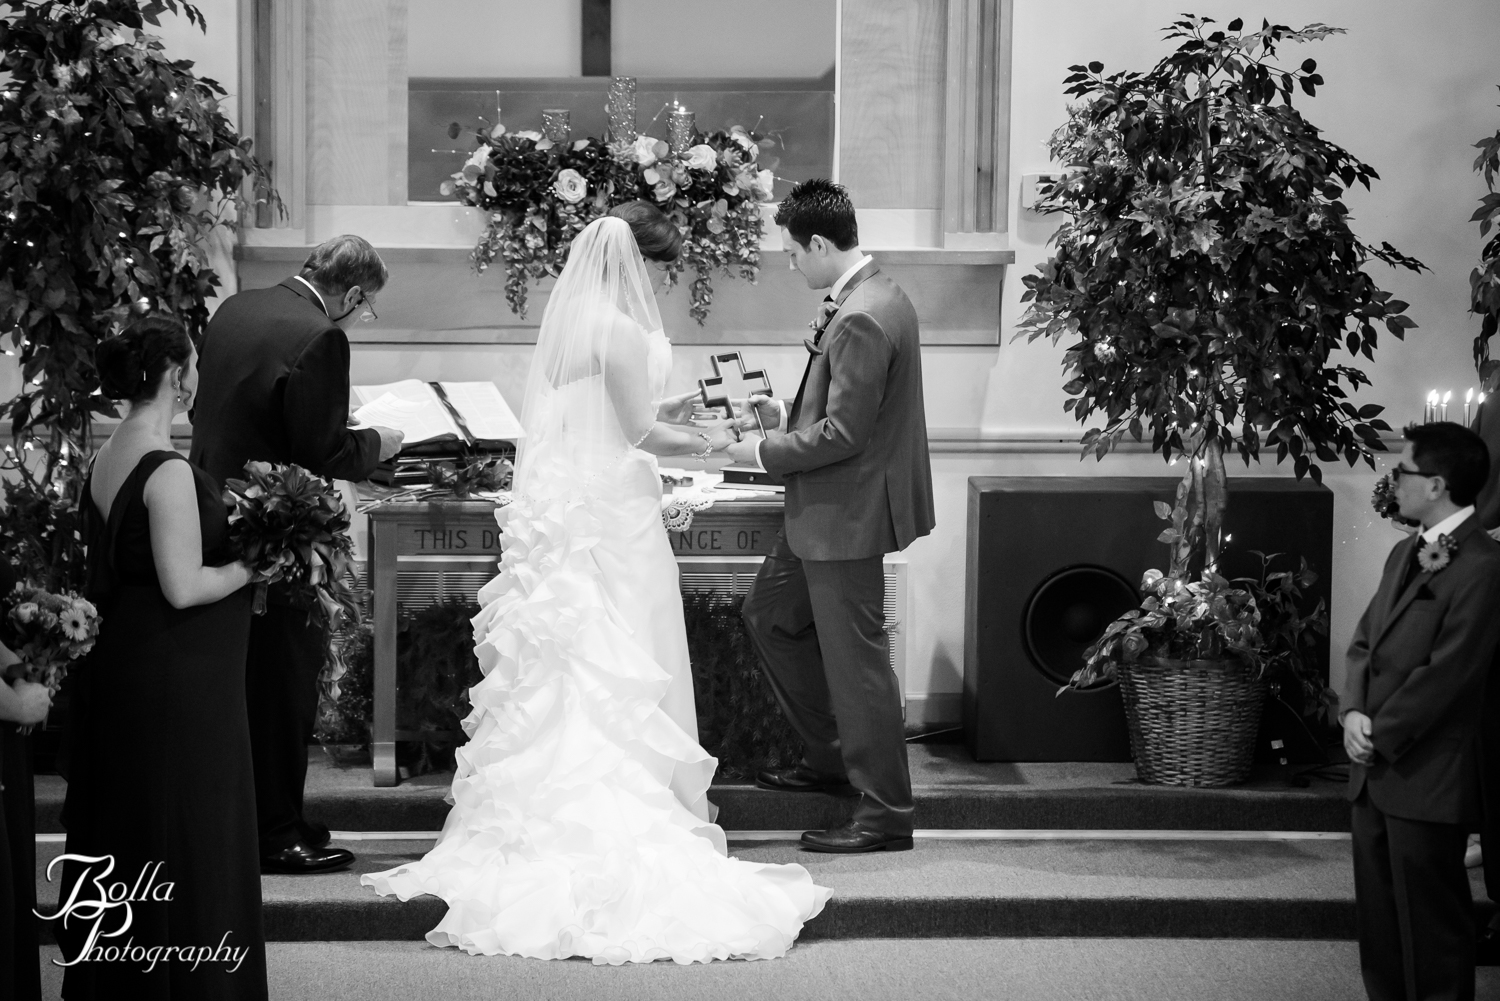 Bolla_Photography_St_Louis_wedding_photographer-0184.jpg